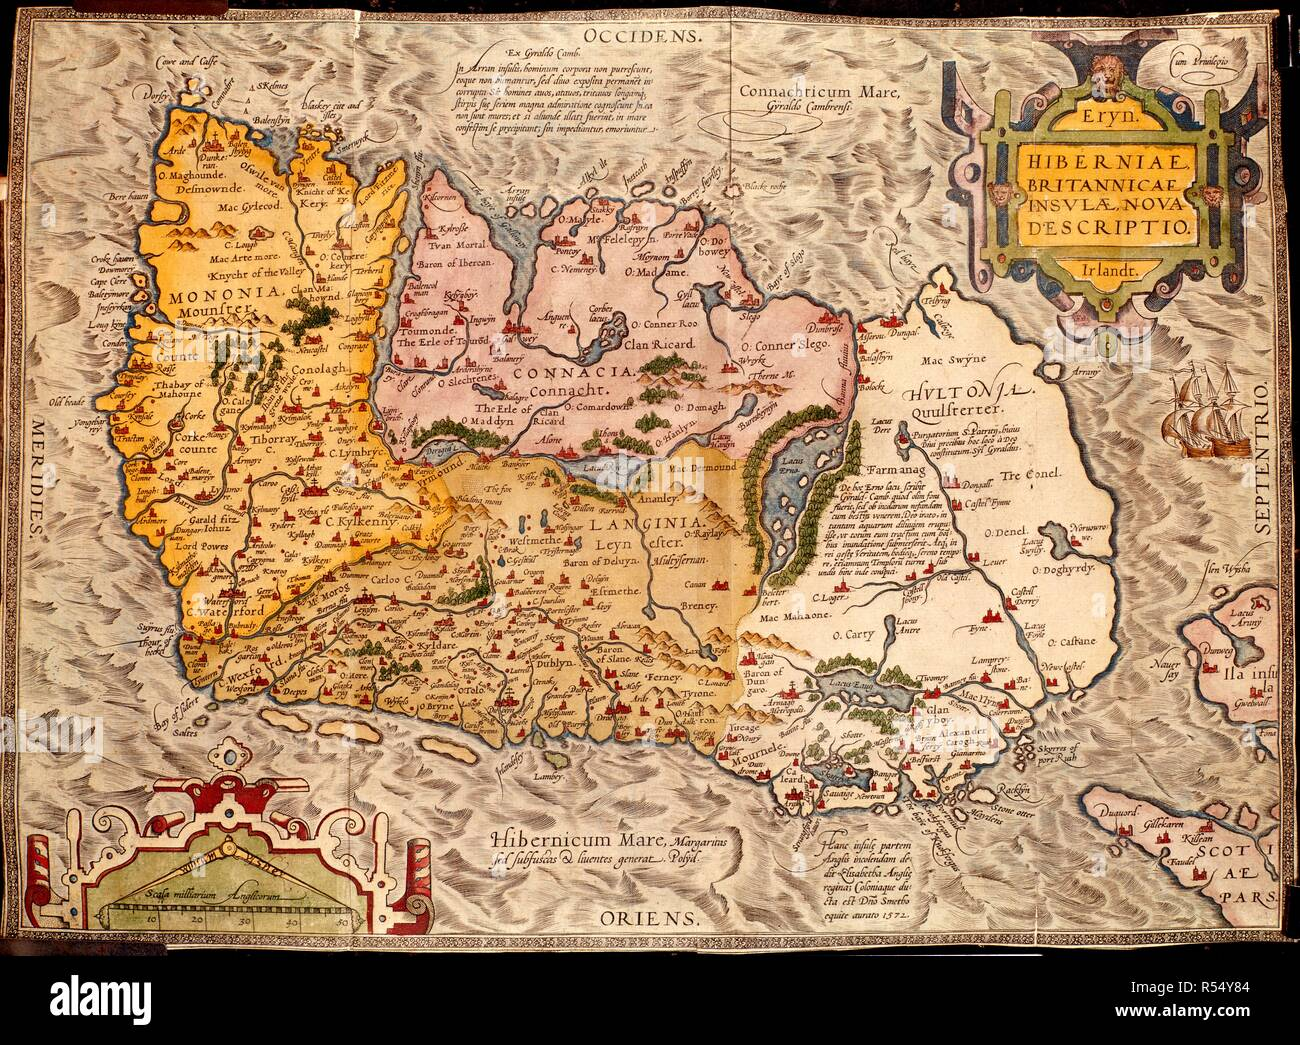 Map Of Ireland England.Map Of Ireland On The Governance Of Ireland England 1572 Whole